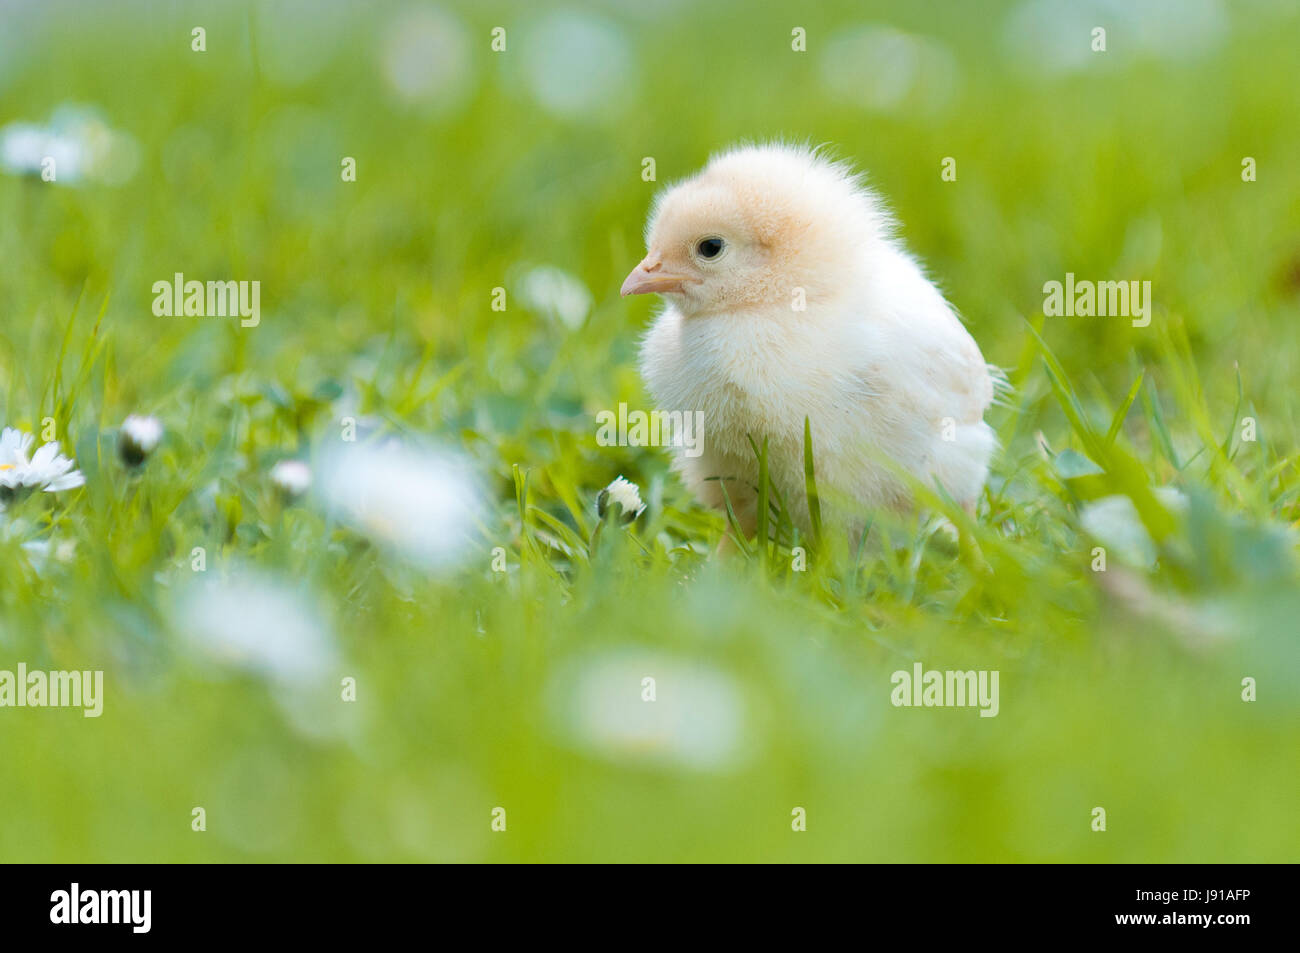 easter, chick, chicken, fluffy, maddening, pert, coquettish, cute, young, - Stock Image